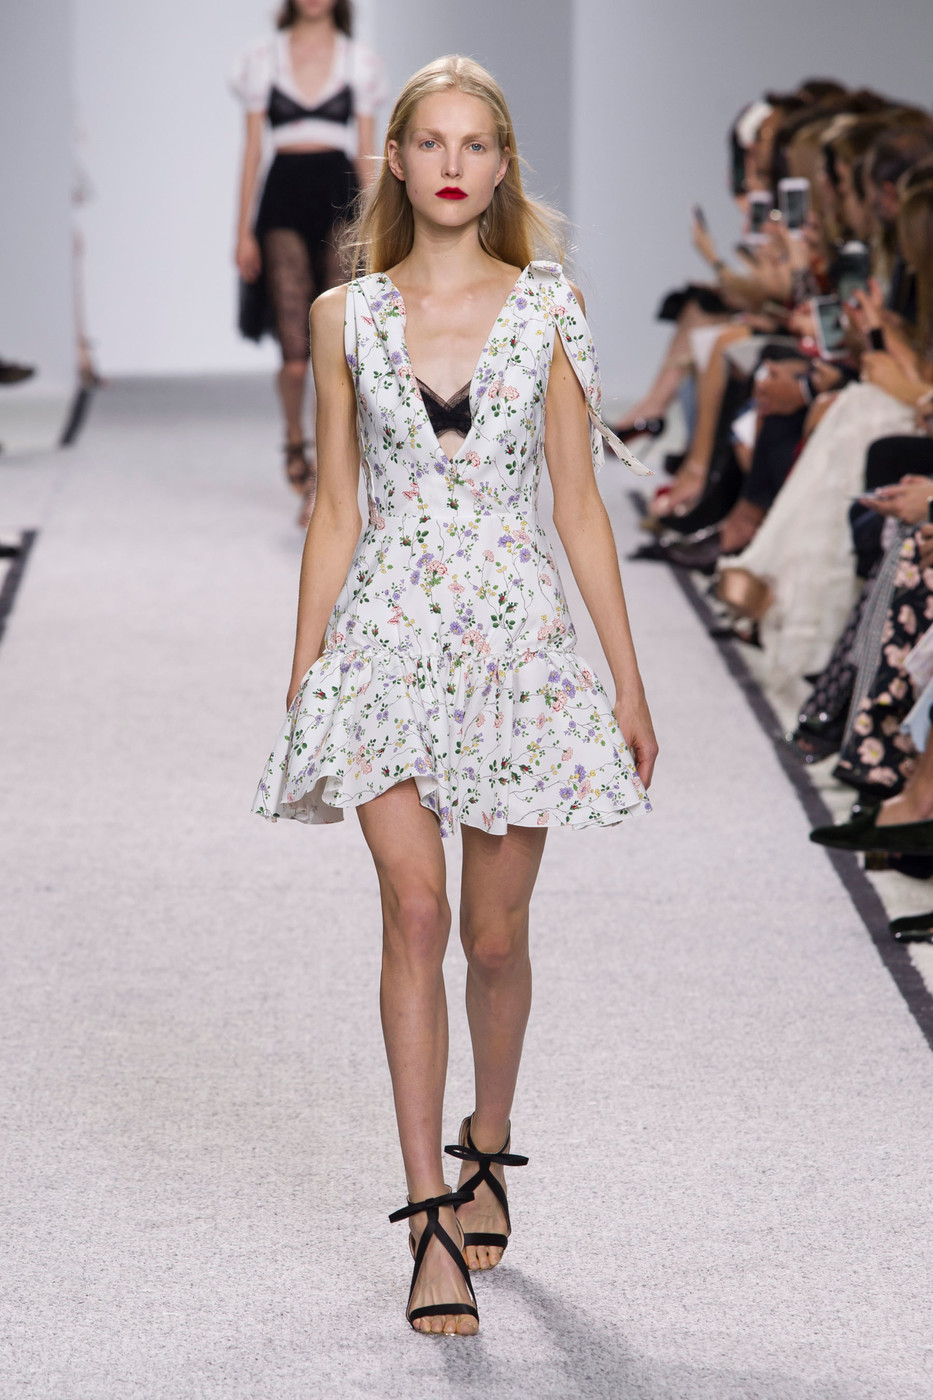 giambattista valli at paris fashion week spring 2017 livingly. Black Bedroom Furniture Sets. Home Design Ideas